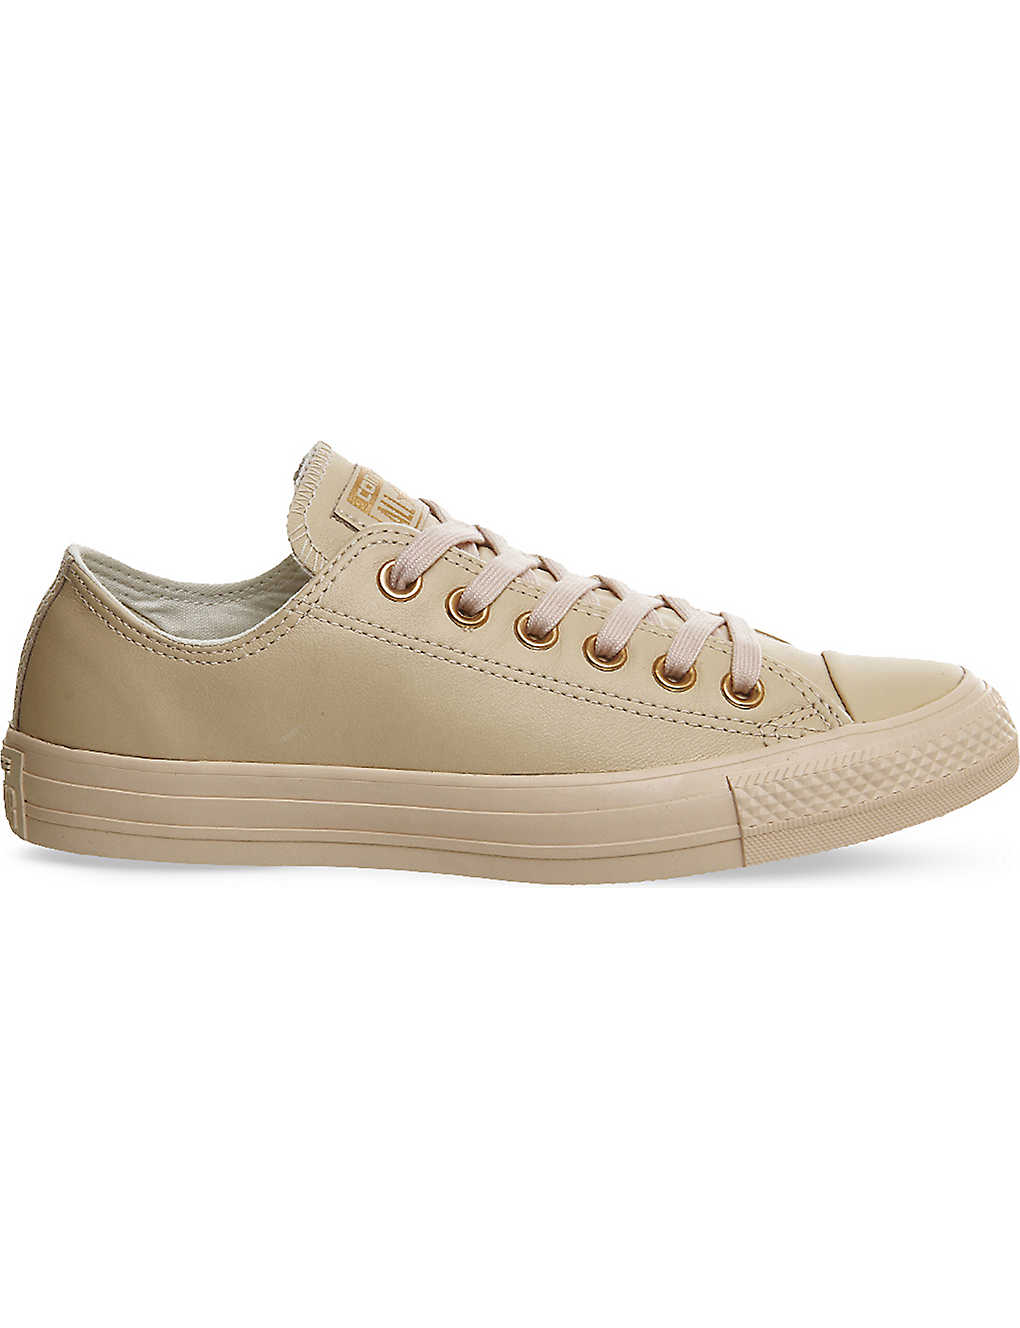 8ab38b960a6 CONVERSE - All star low-top leather trainers